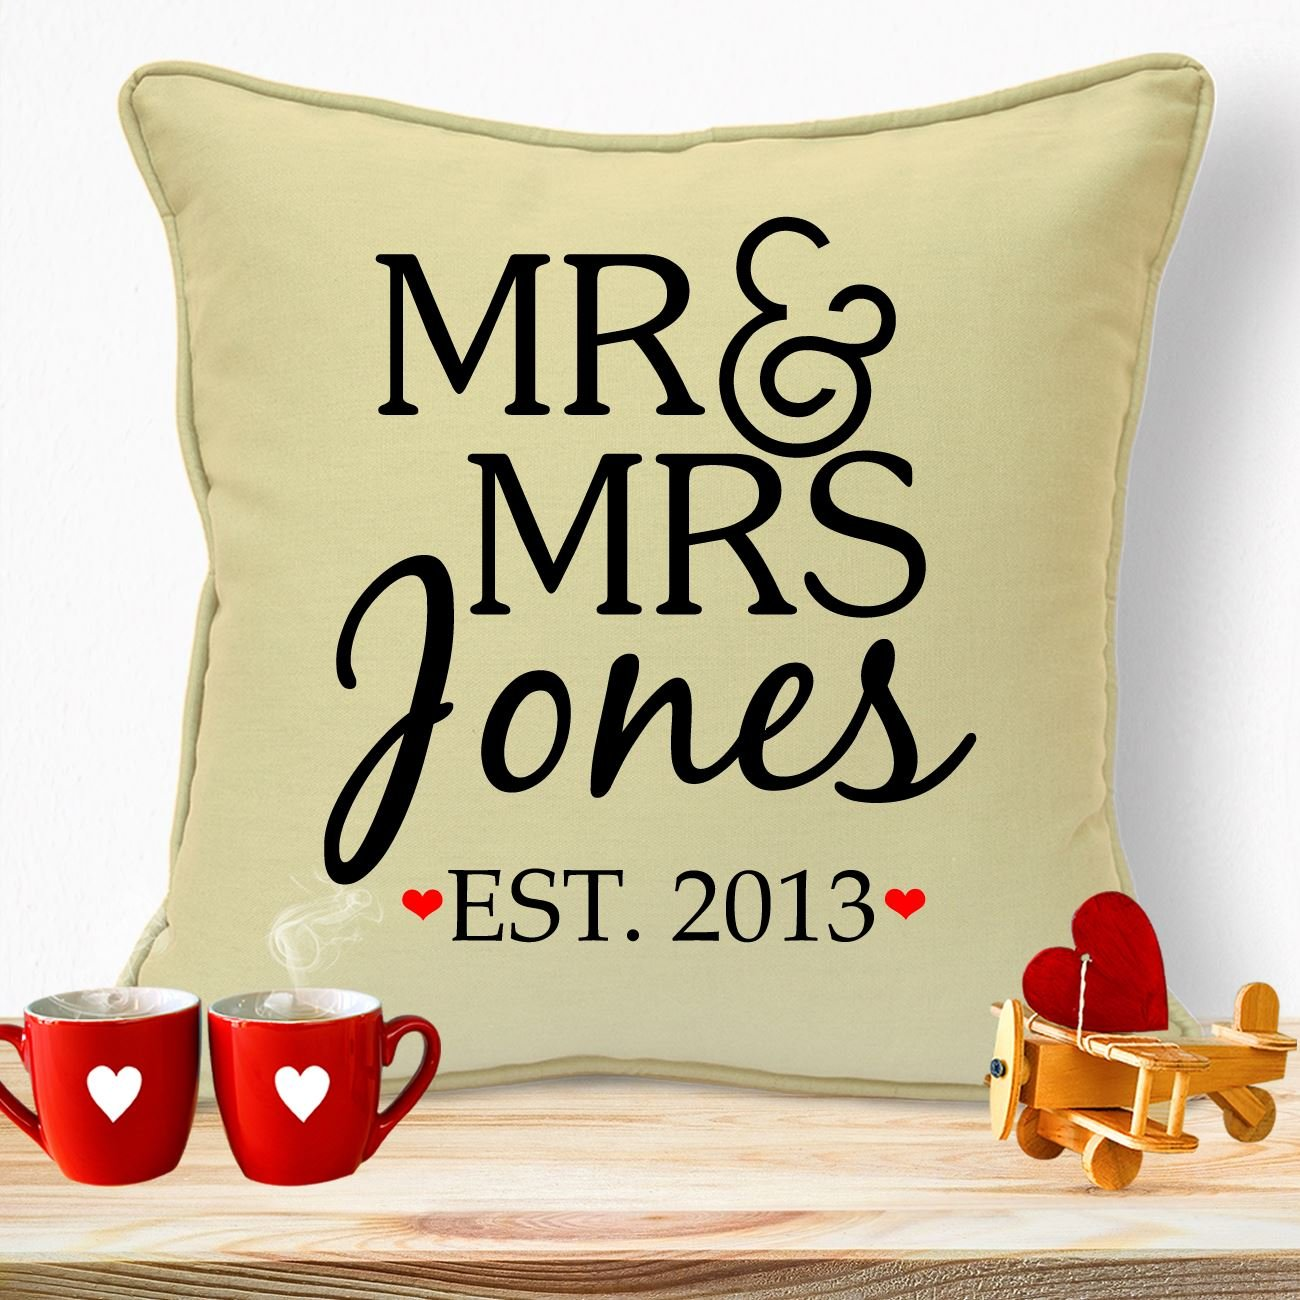 Personalised Gifts For Husband Wife Him Her Girlfriends Boyfriends Wedding Anniversary Valentines Day Birthday Christmas Xmas Romantic Decorations Ideas For Couples Handmade Mr & Mrs Sign Cushion